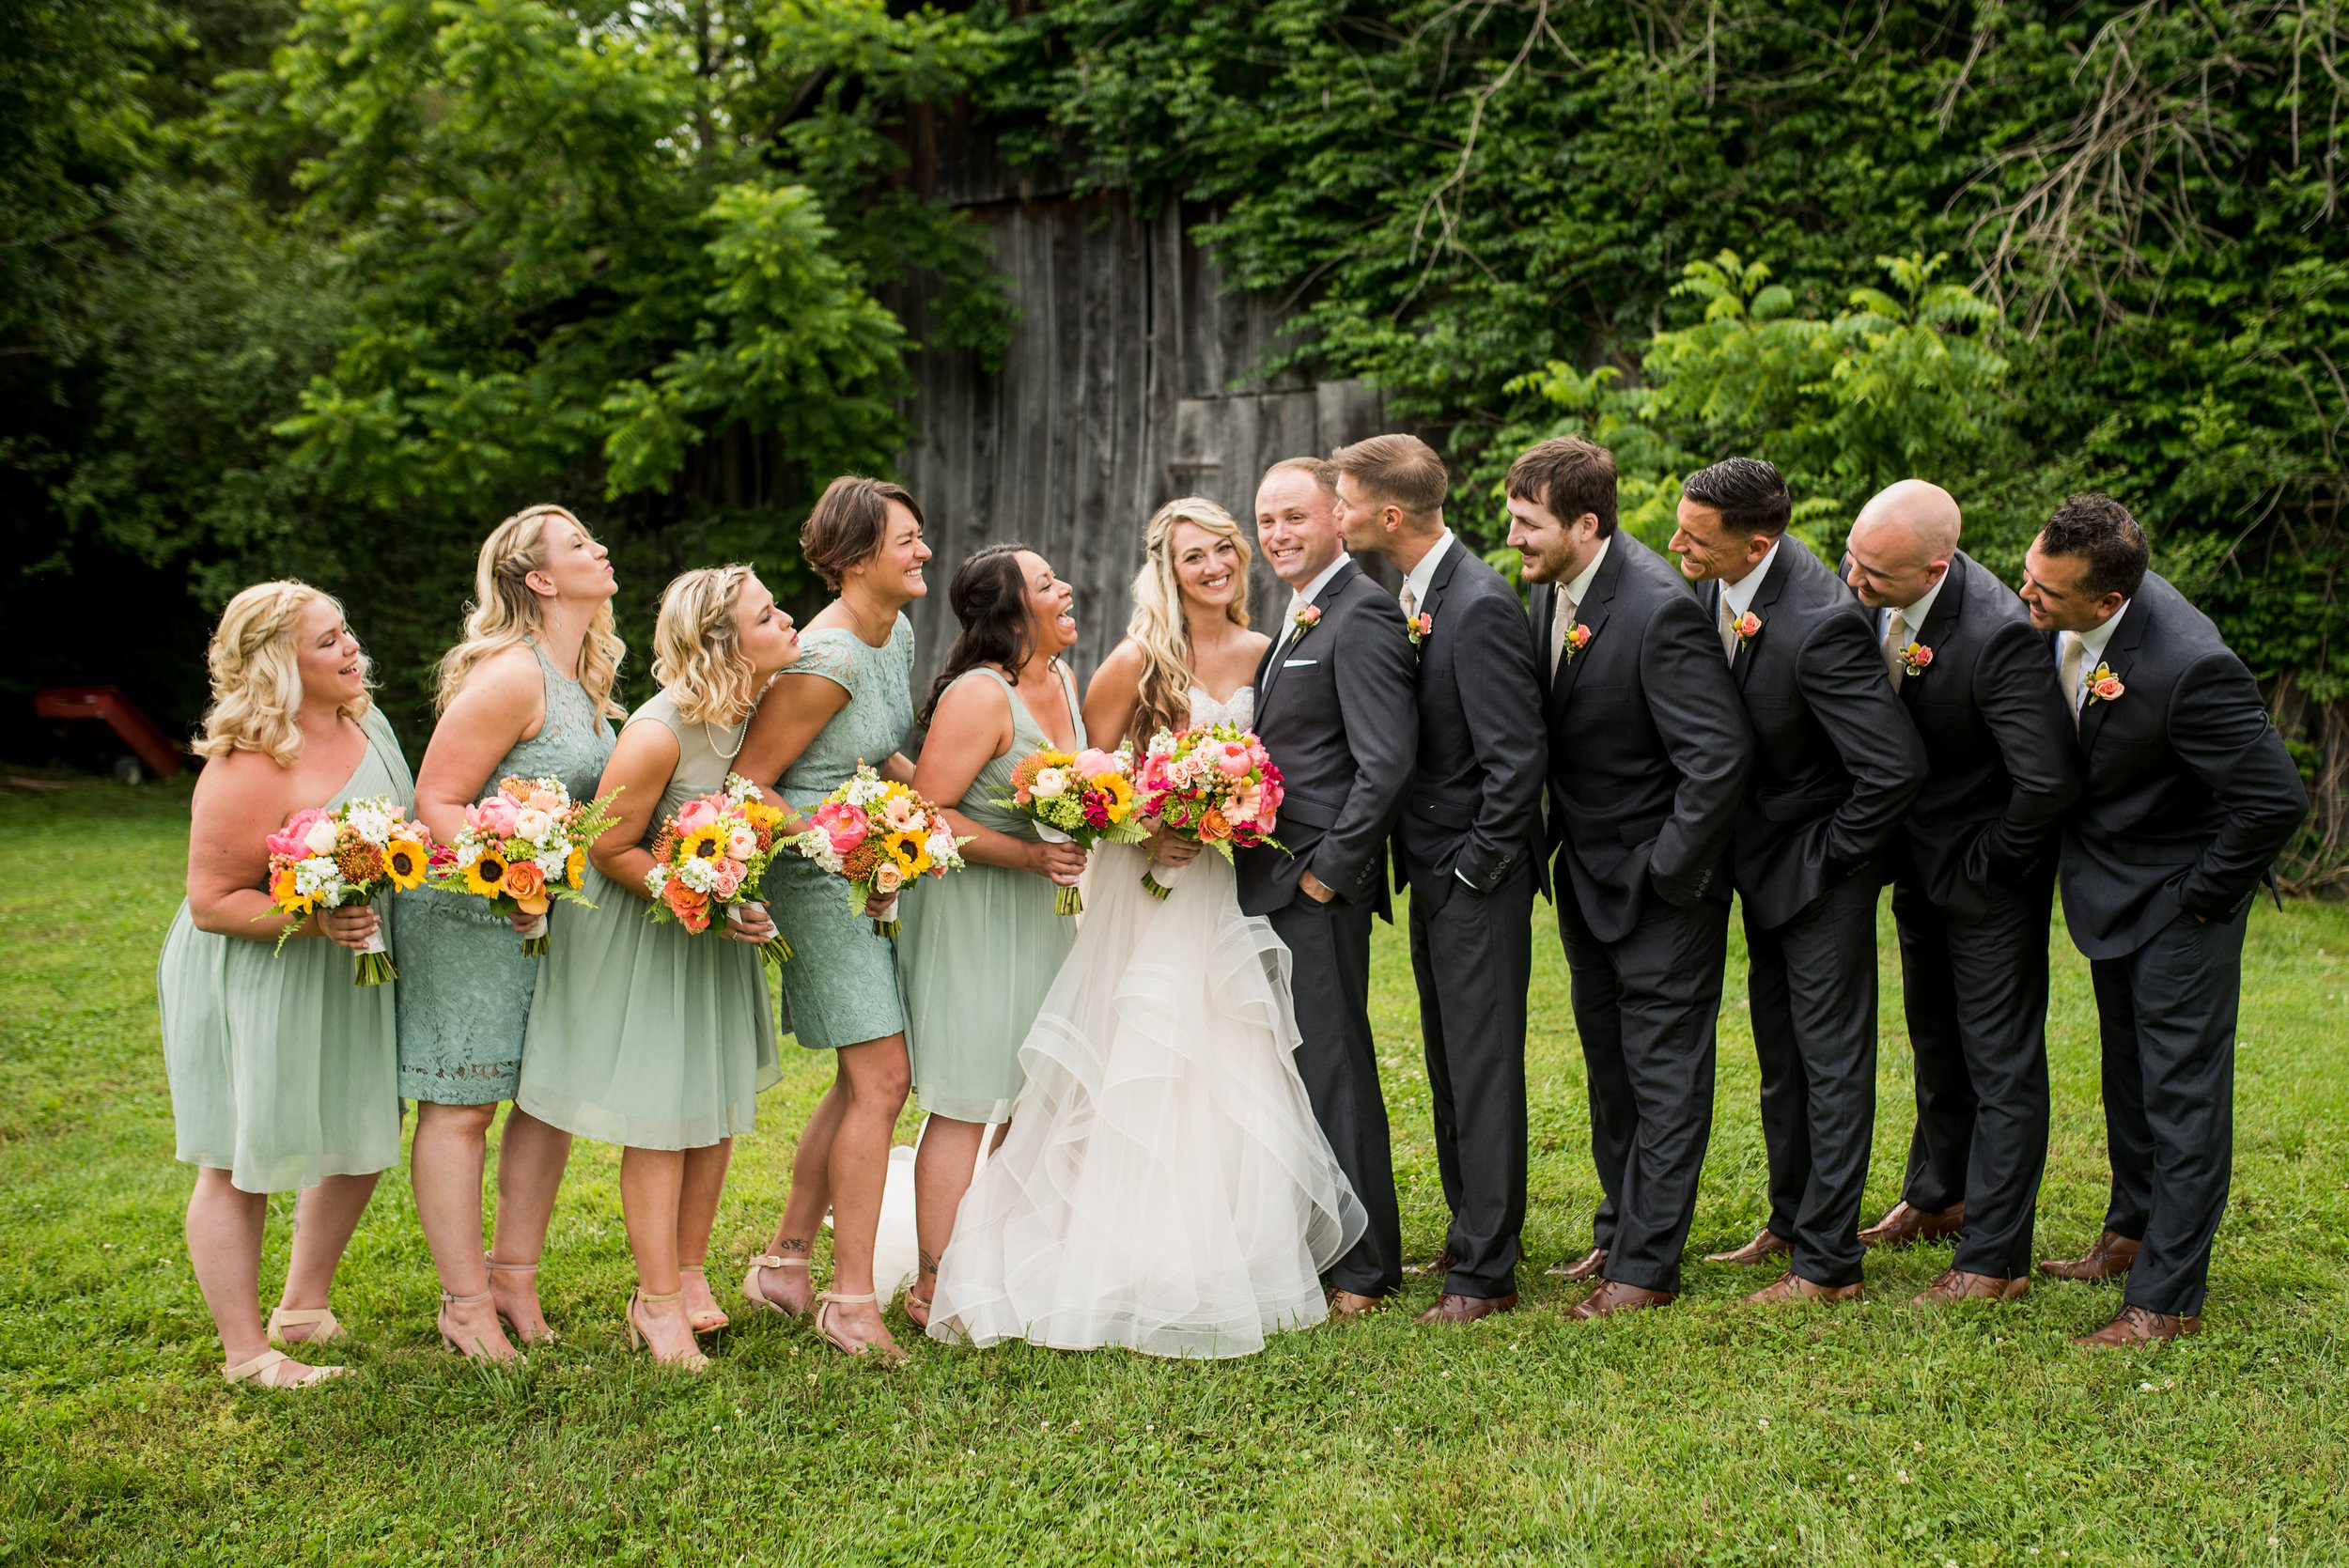 Nashville Wedding Photographers Drakewood Farm-425.jpg